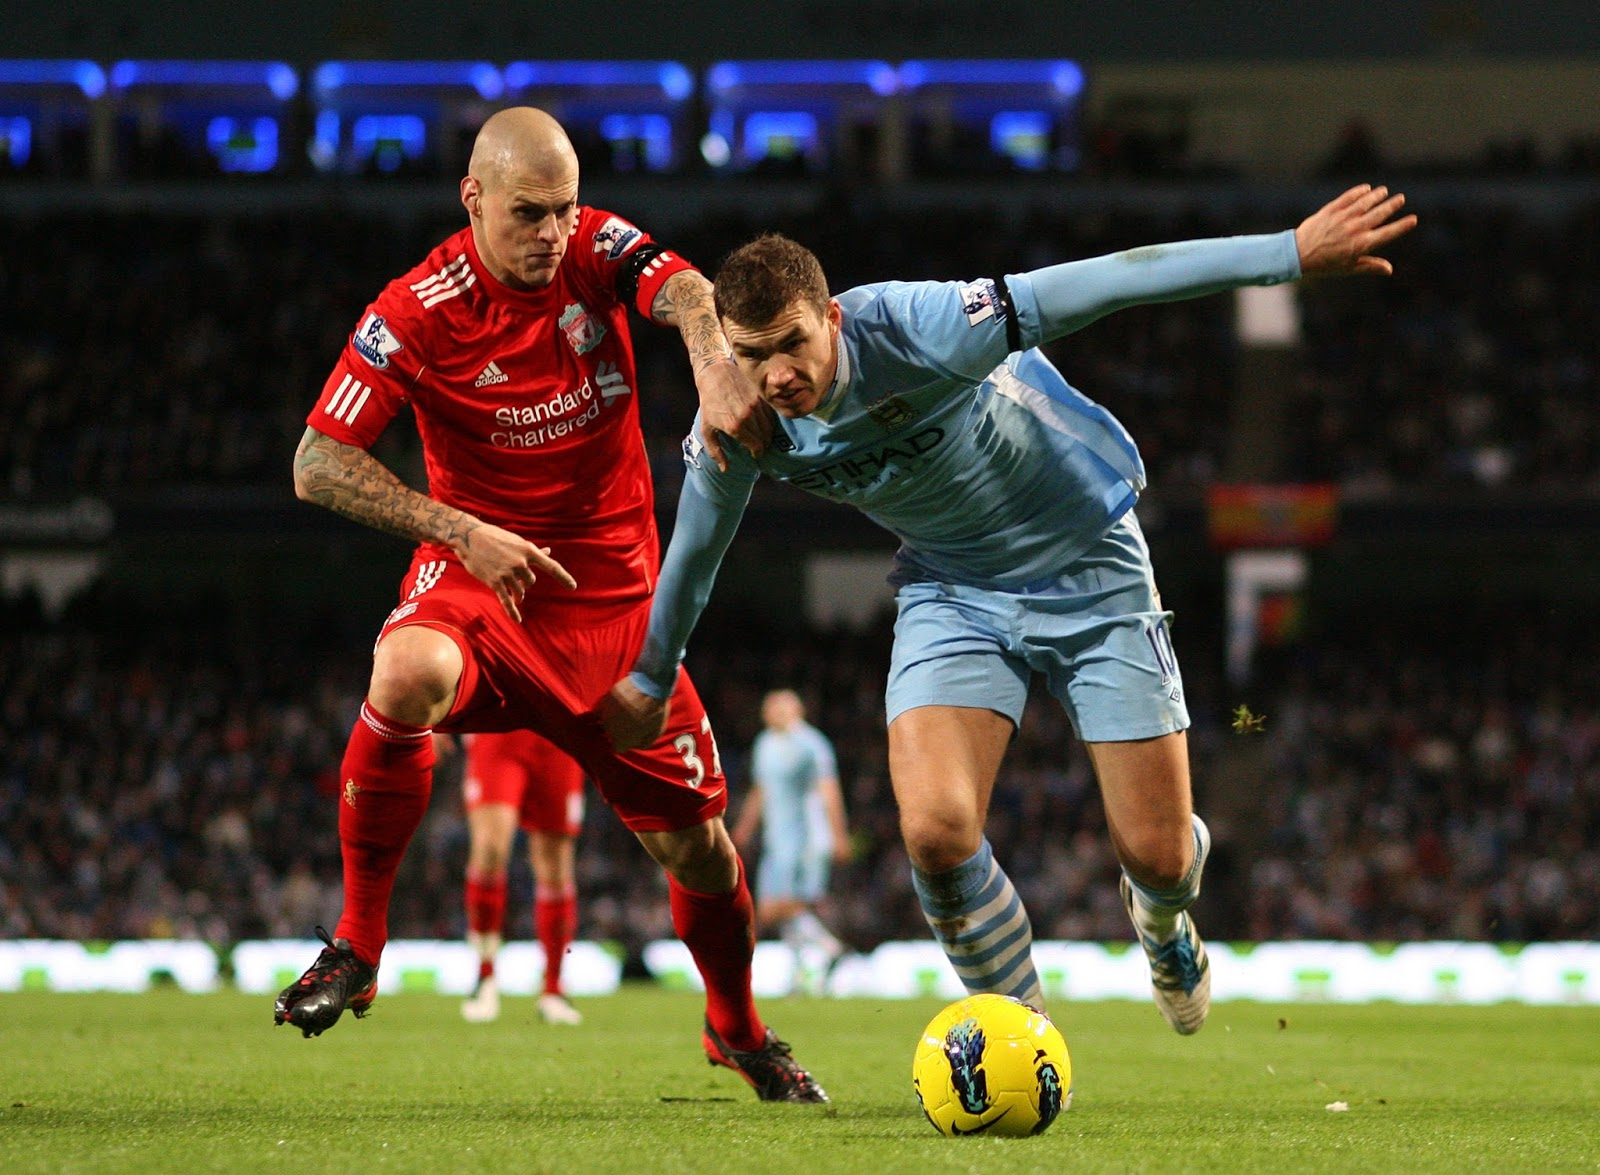 man-city-v-liverpool-betting